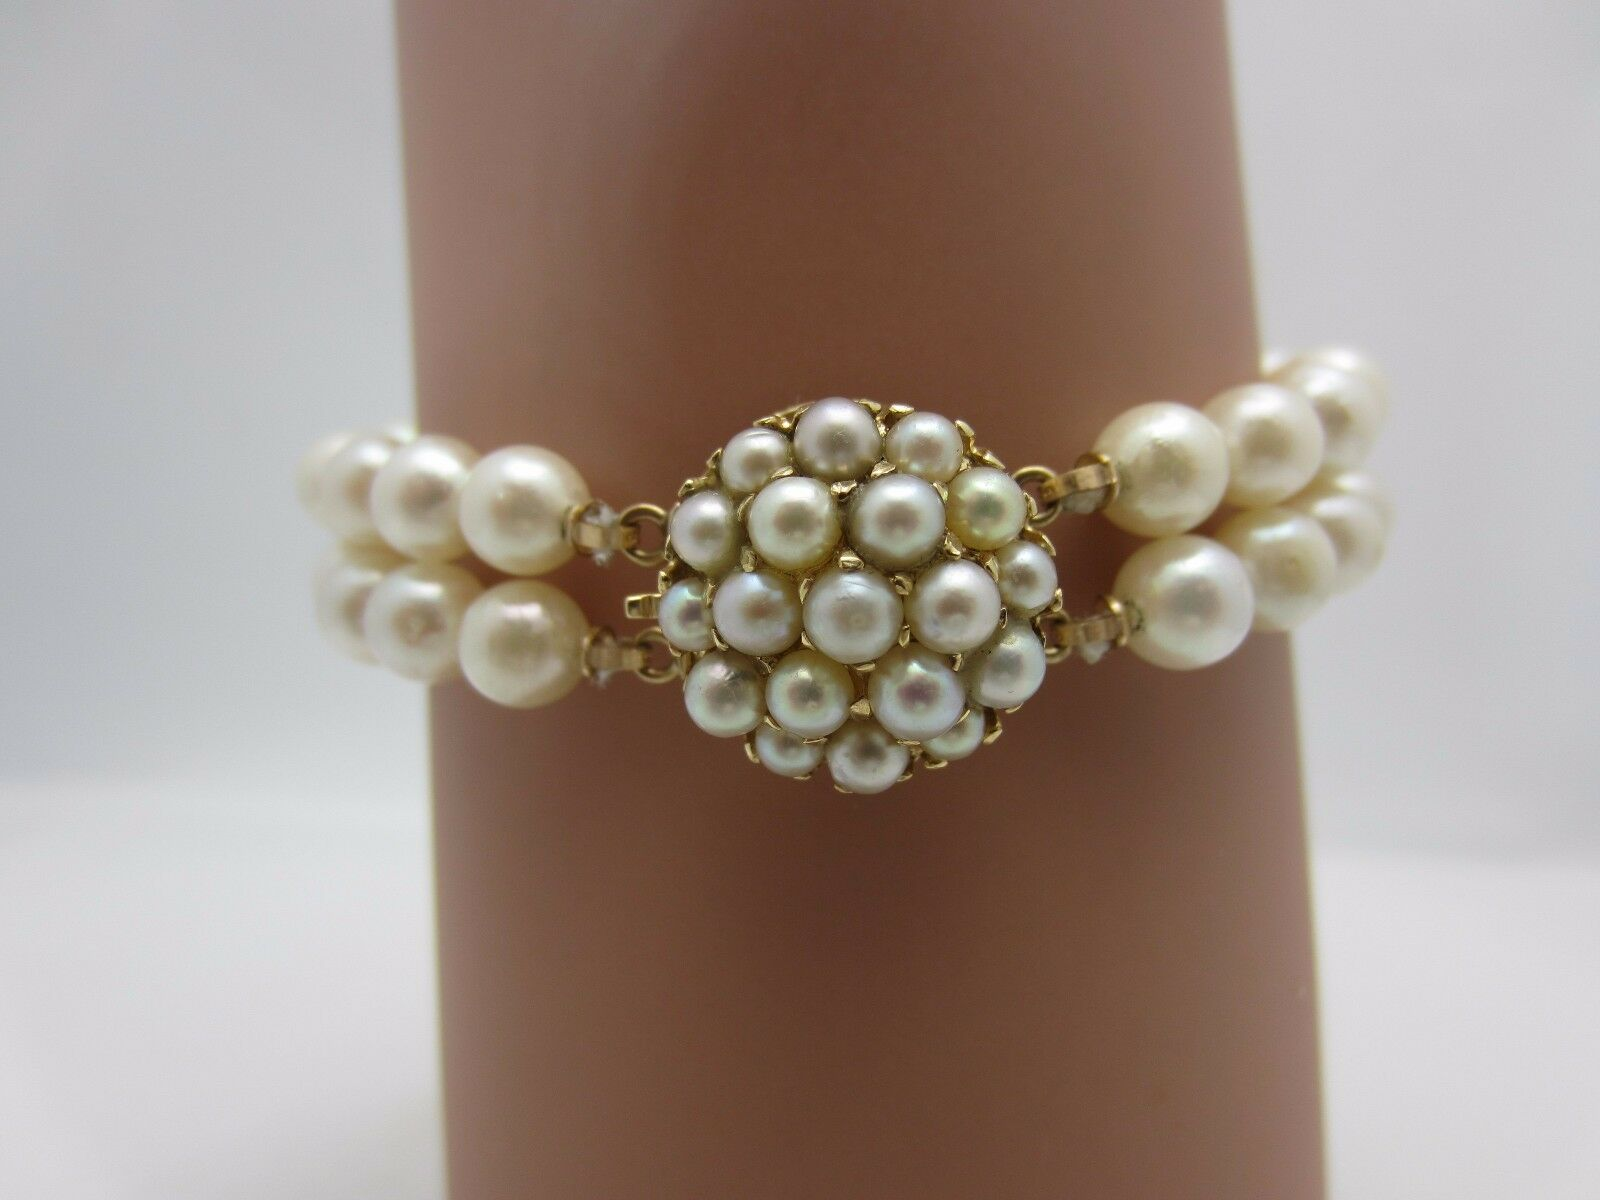 14K Yellow gold and Double Strand 6 mm Pearl Bracelet with Fancy Clasp 7